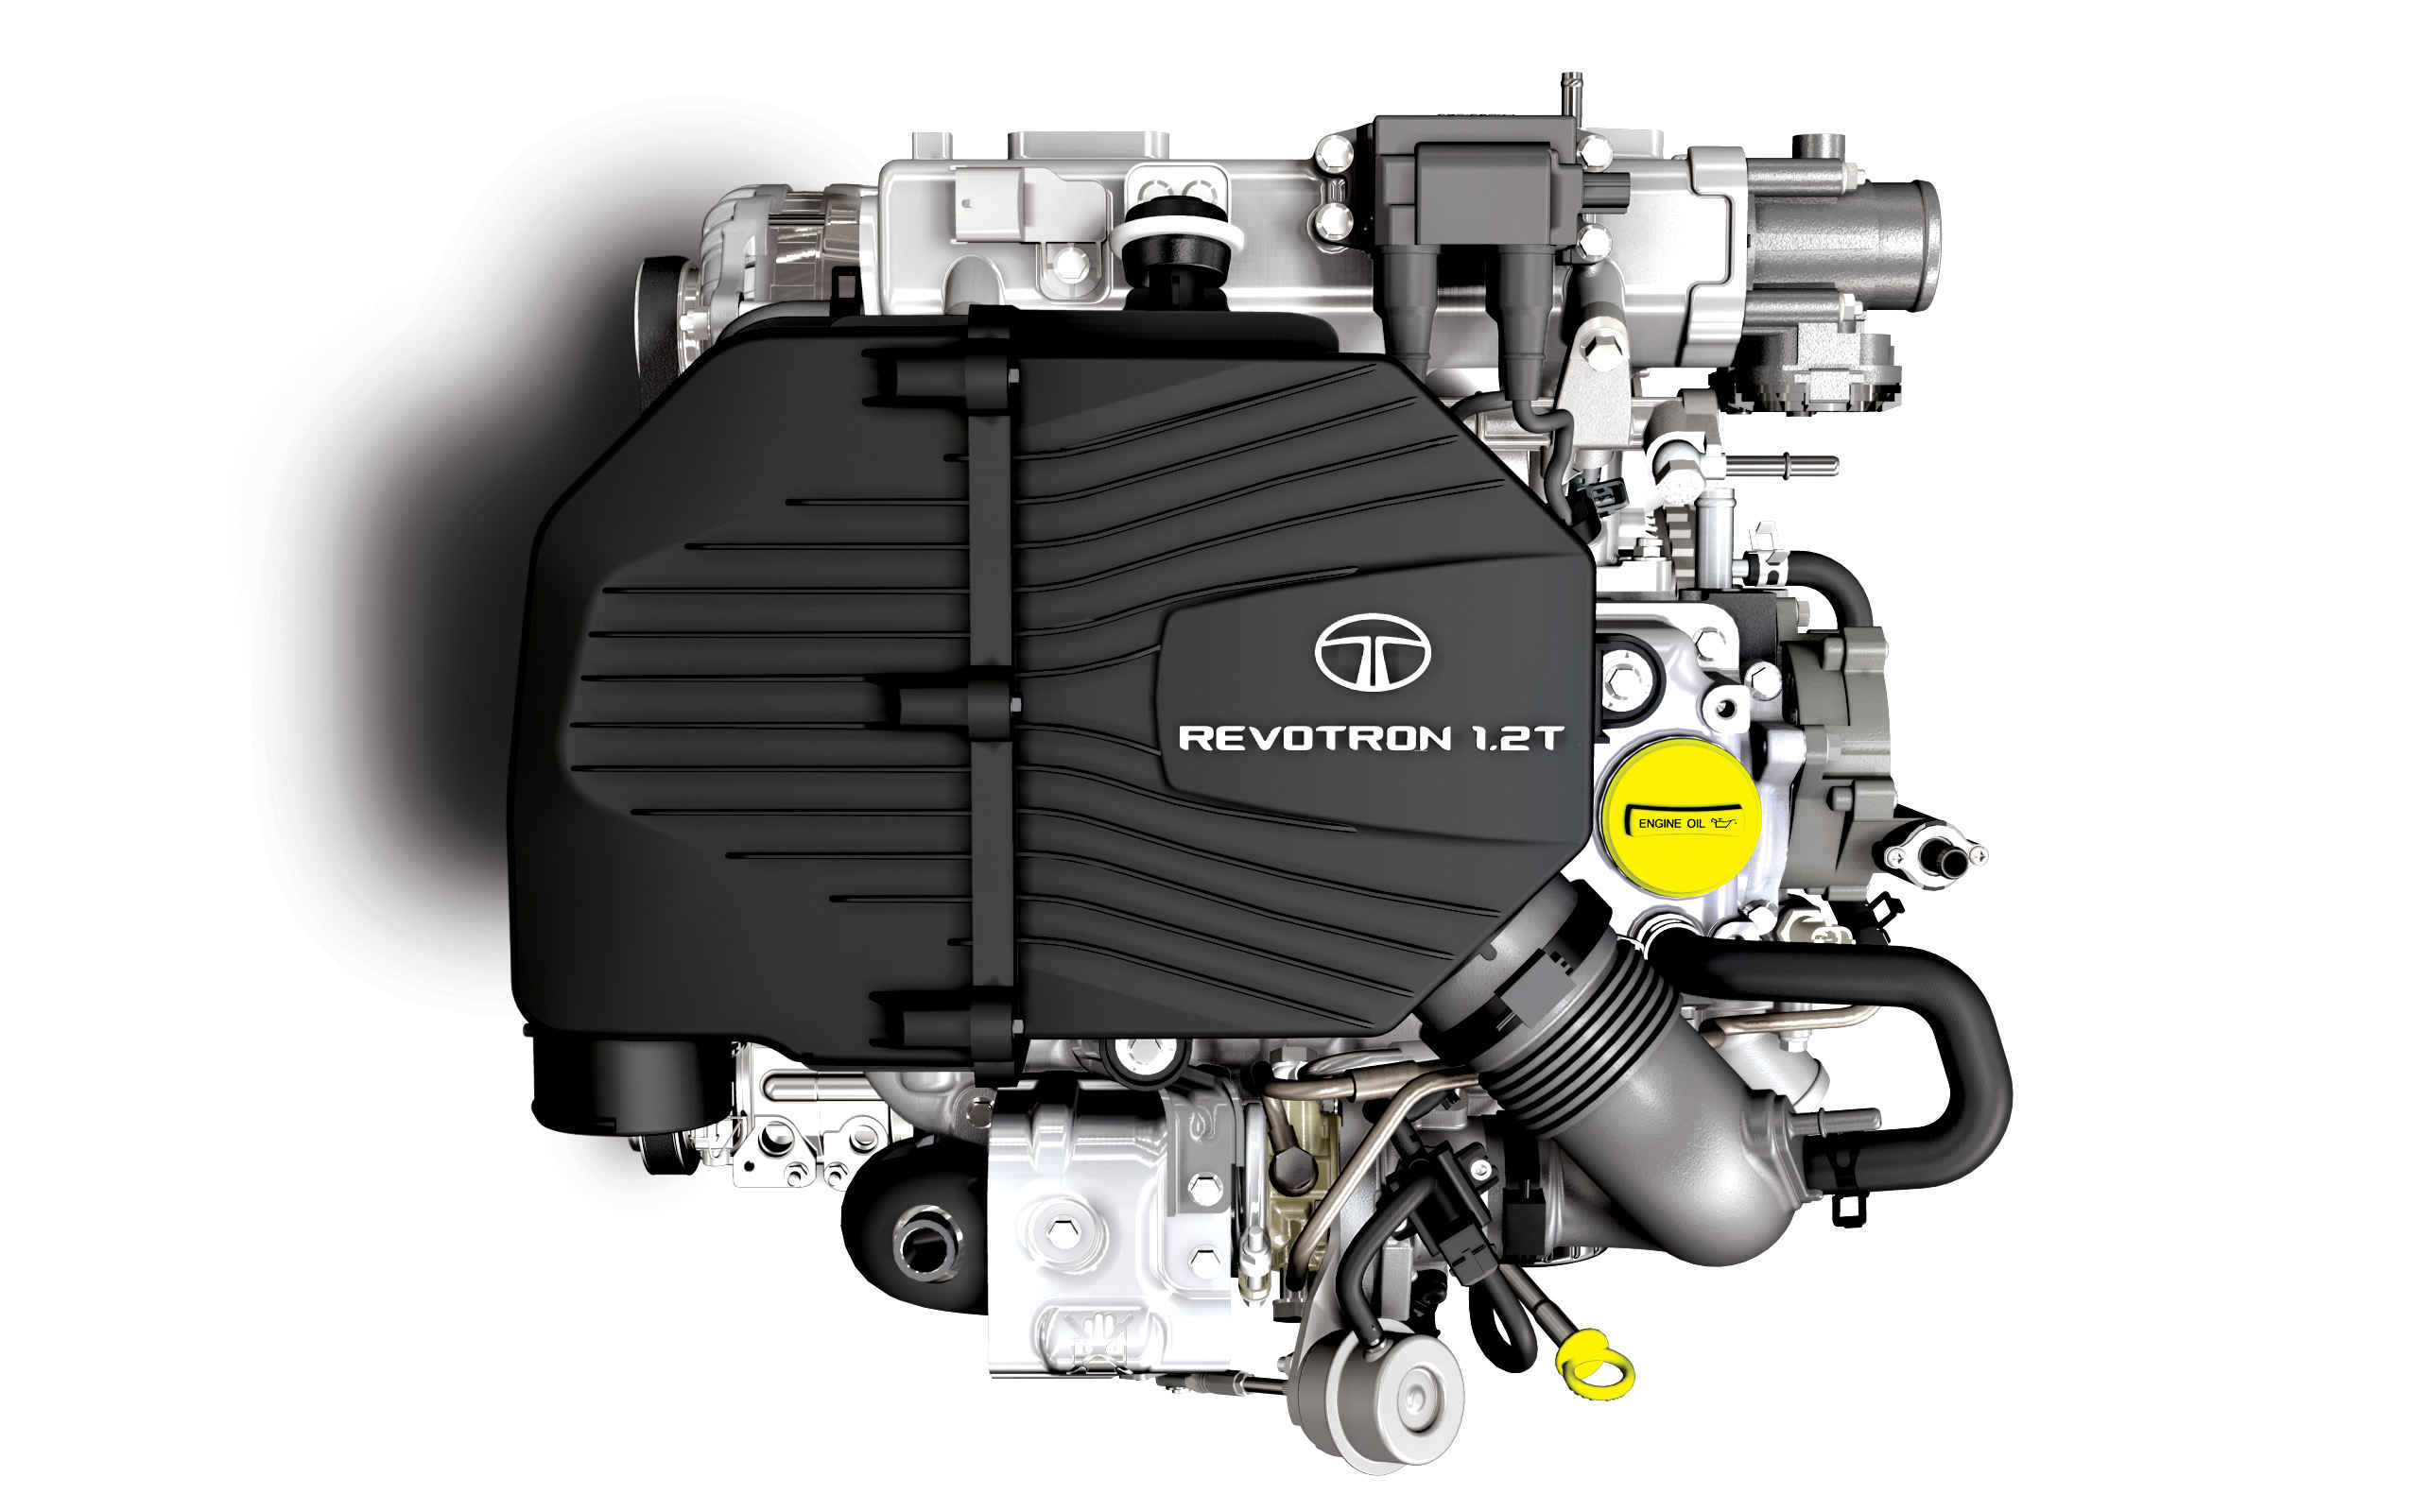 TATA Motors Introduce Revotron 1.2T – New Petrol Engine